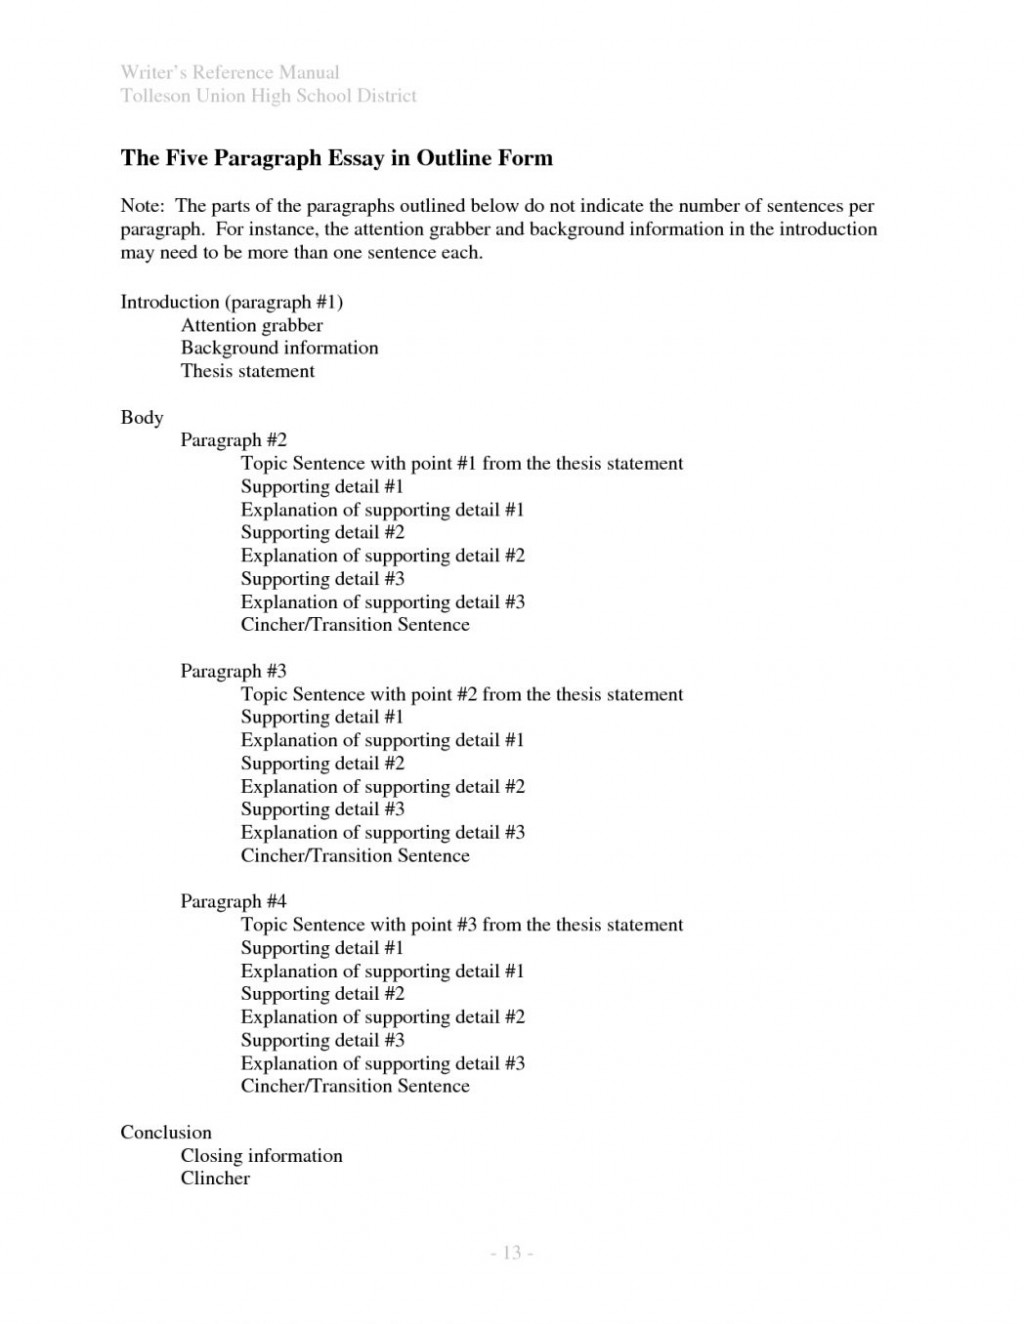 006 An Outline For Research Paper Argumentative Essay Abortion Inside High School Examples Of Thesis Statements Unforgettable Papers Large